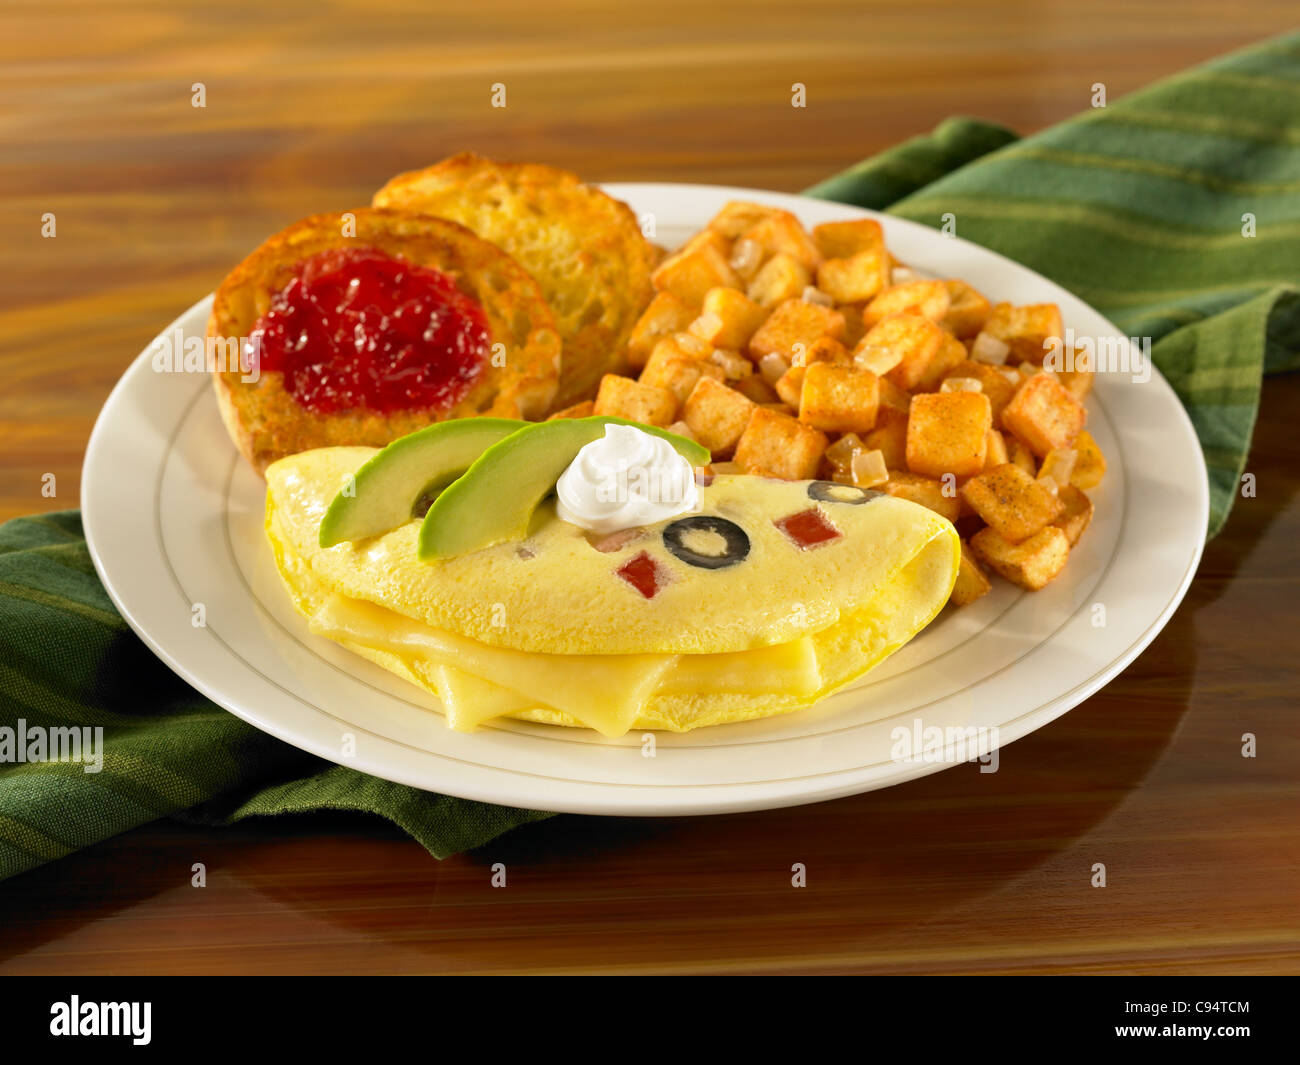 A cheese omelet topped with sour cream and avocado slices served with potato and english muffin with jelly - Stock Image